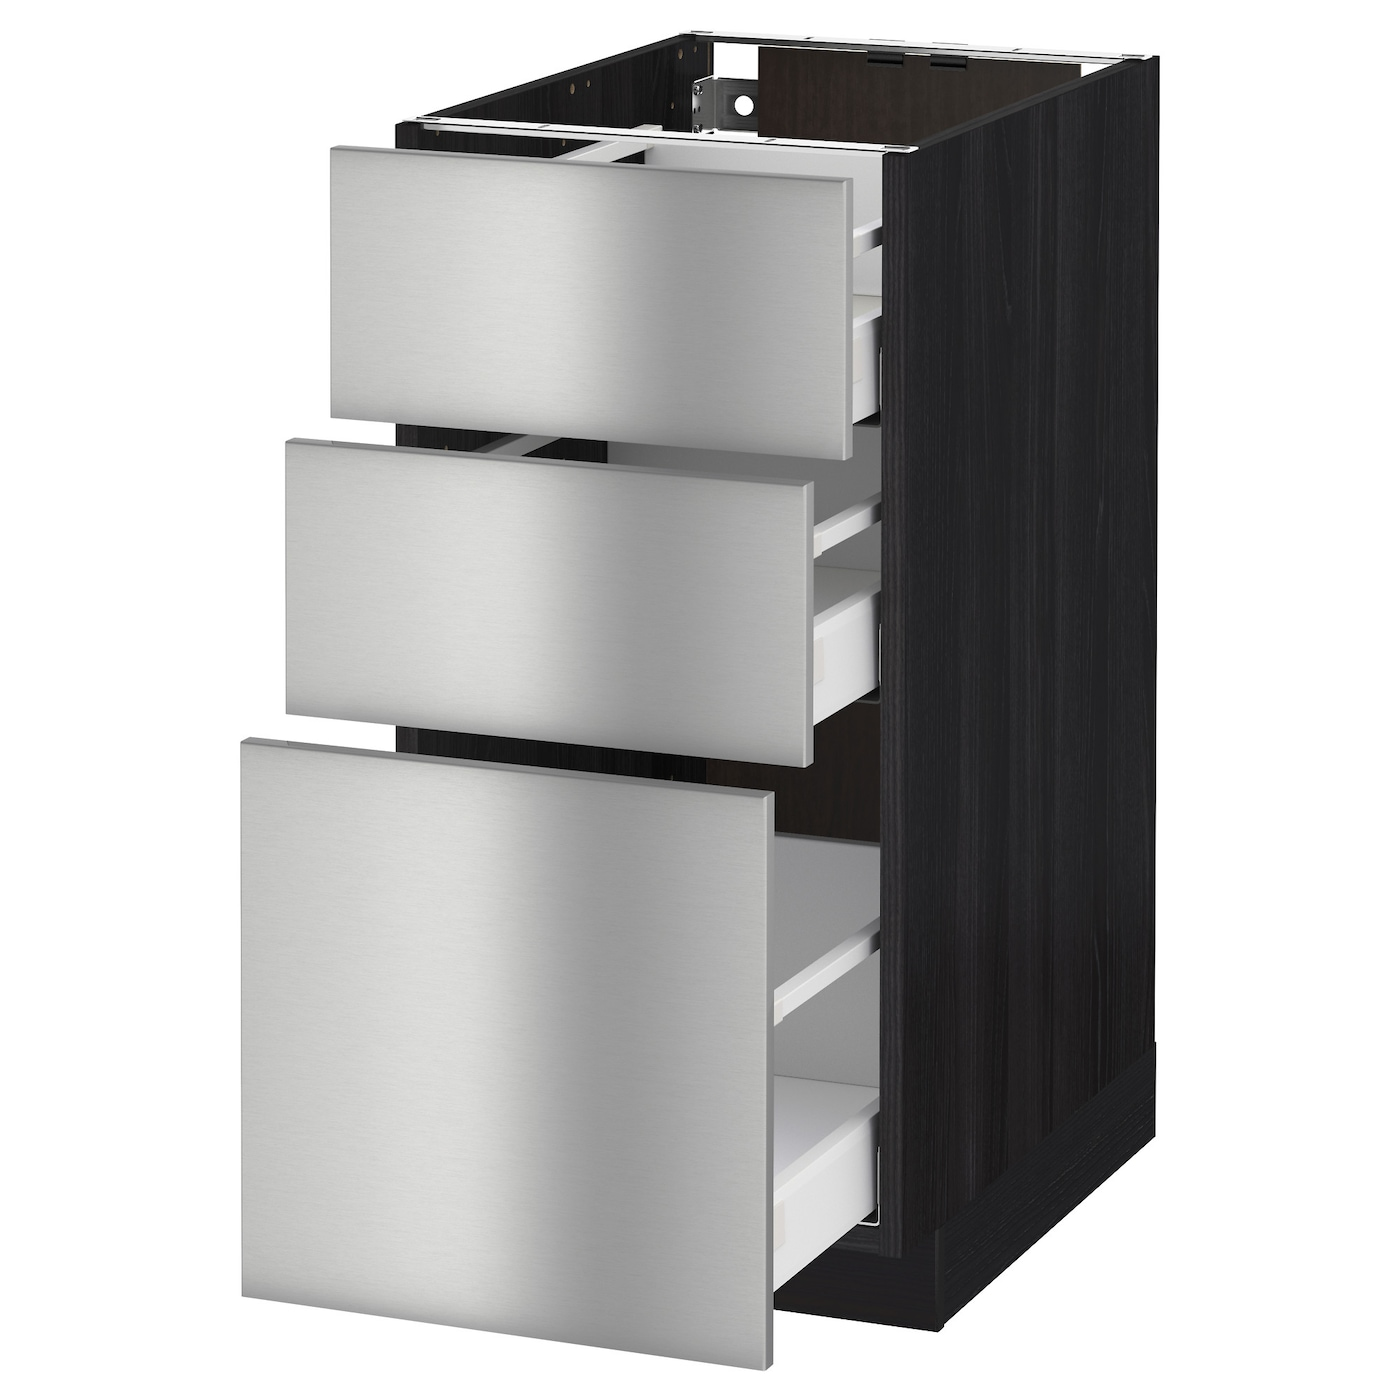 IKEA METOD/MAXIMERA base cabinet with 3 drawers Smooth-running drawers with stop.